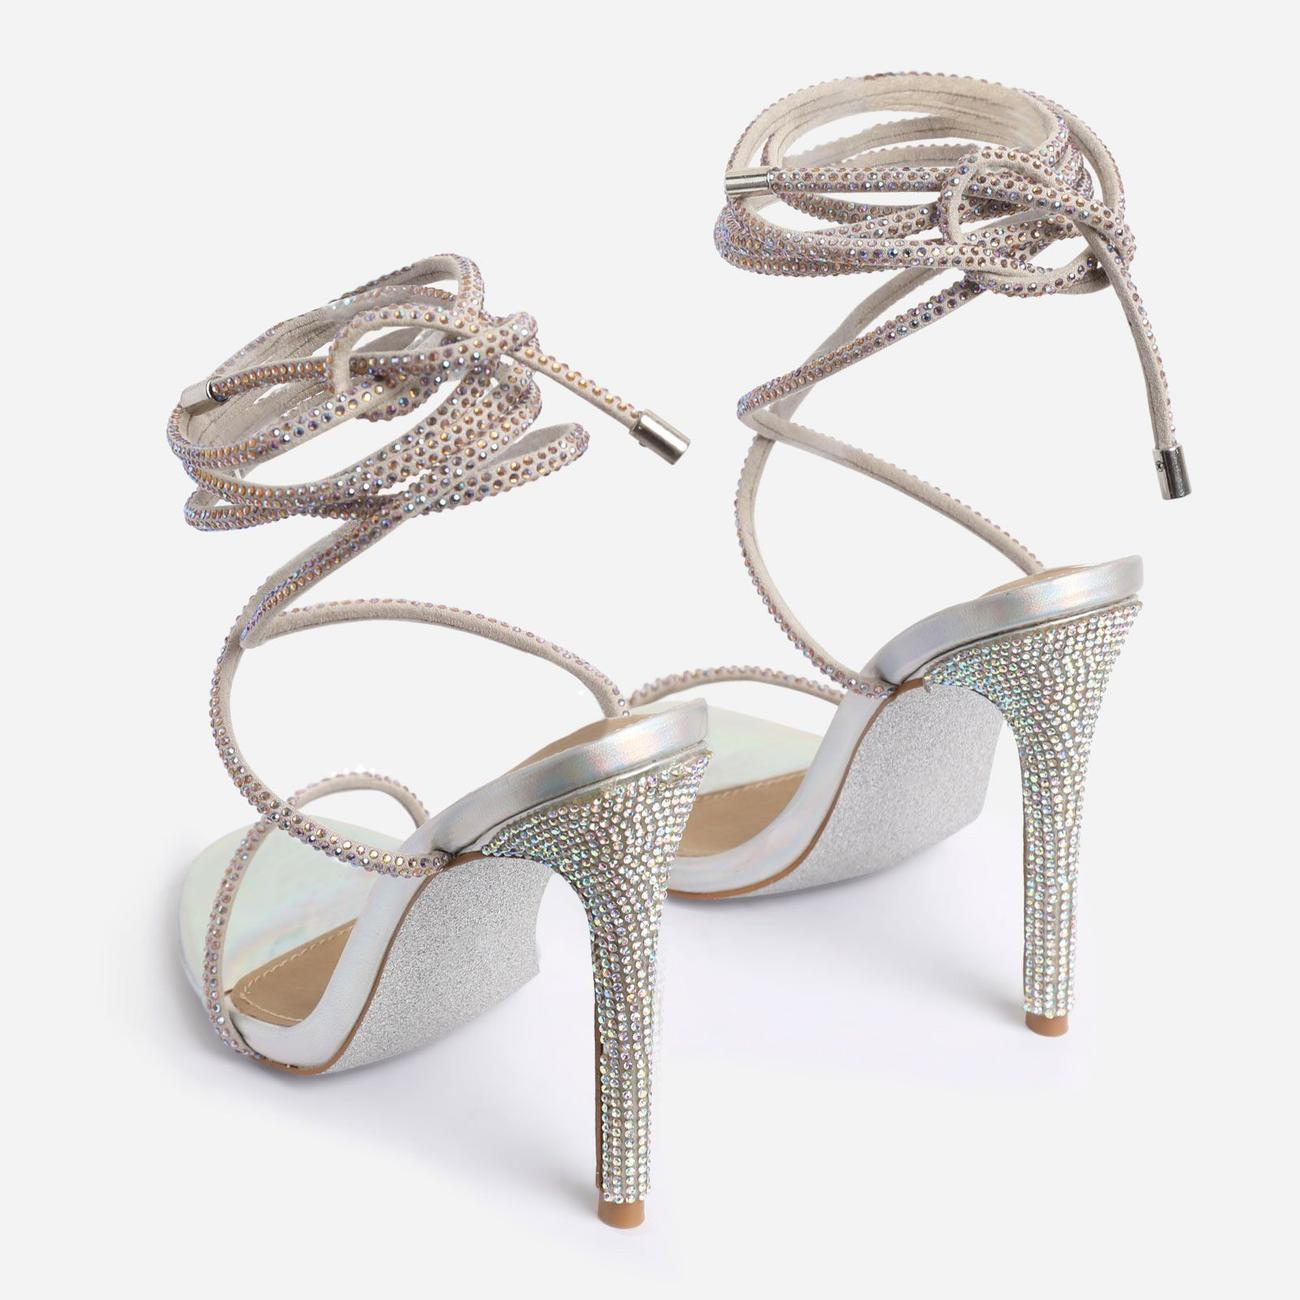 Carmella Glitter Sole Diamante Detail Lace Up Heel In Silver Holographic Faux Leather Image 4